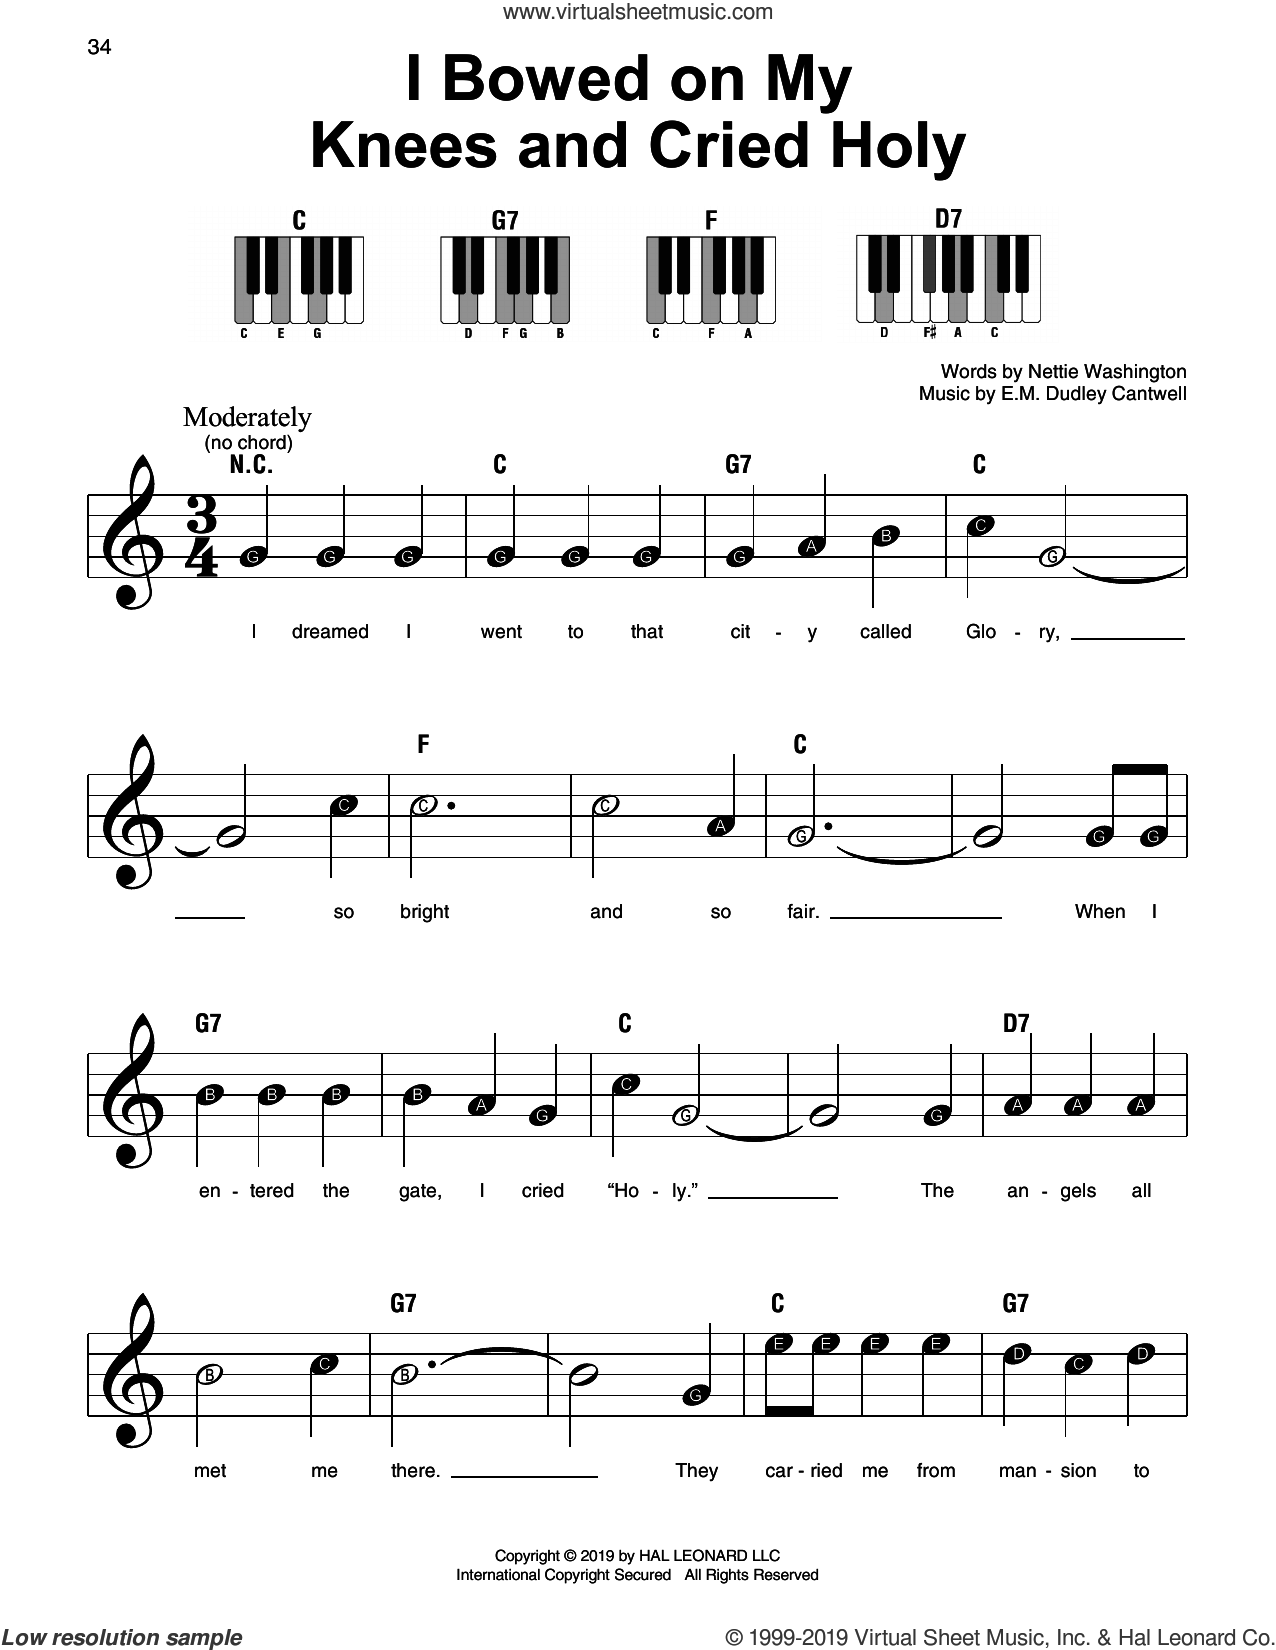 I Bowed On My Knees And Cried Holy sheet music for piano solo by E.M. Dudley Cantwell and Nettie Dudley Washington, beginner skill level